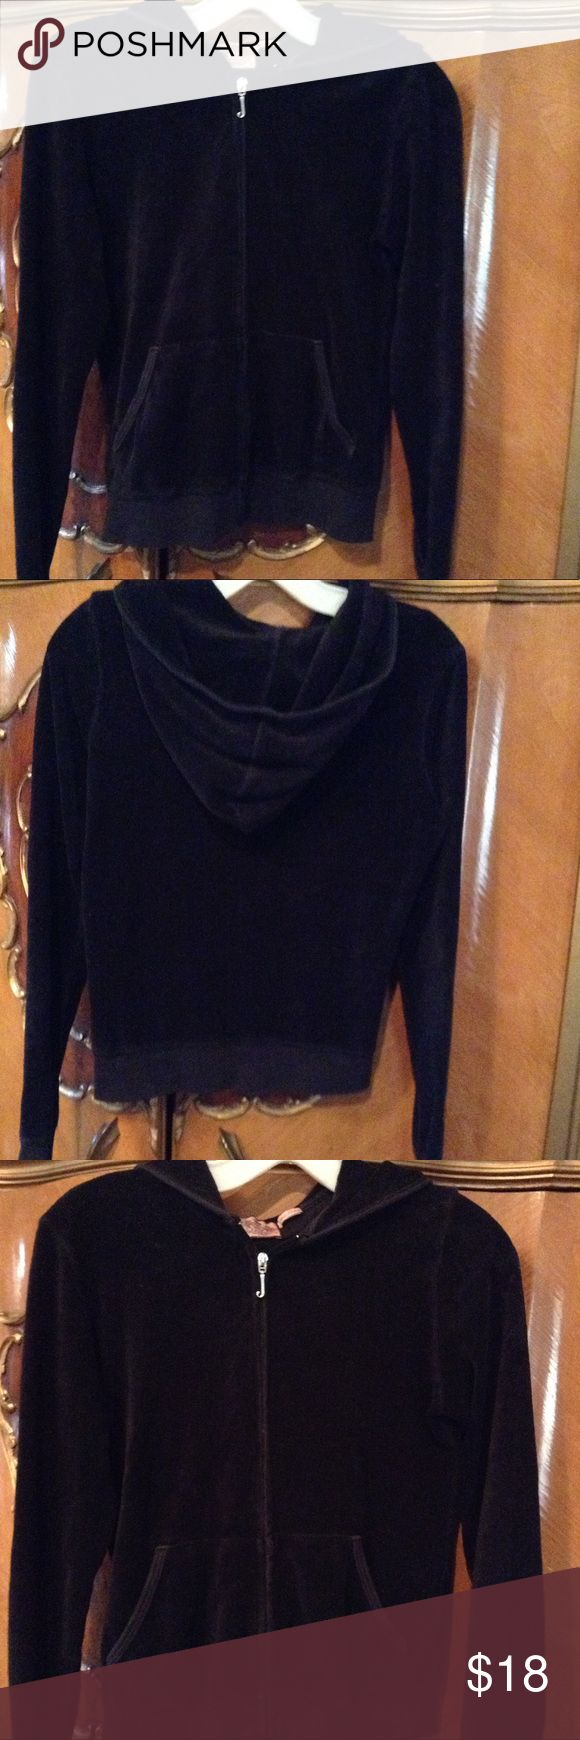 """Adorable Juicy Couture Black Velour Jacket Beautiful black velour jacket with front pockets, zip front, long sleeves, hooded, silver """"J"""" zipper in front, excellent condition. Juicy Couture Jackets & Coats"""